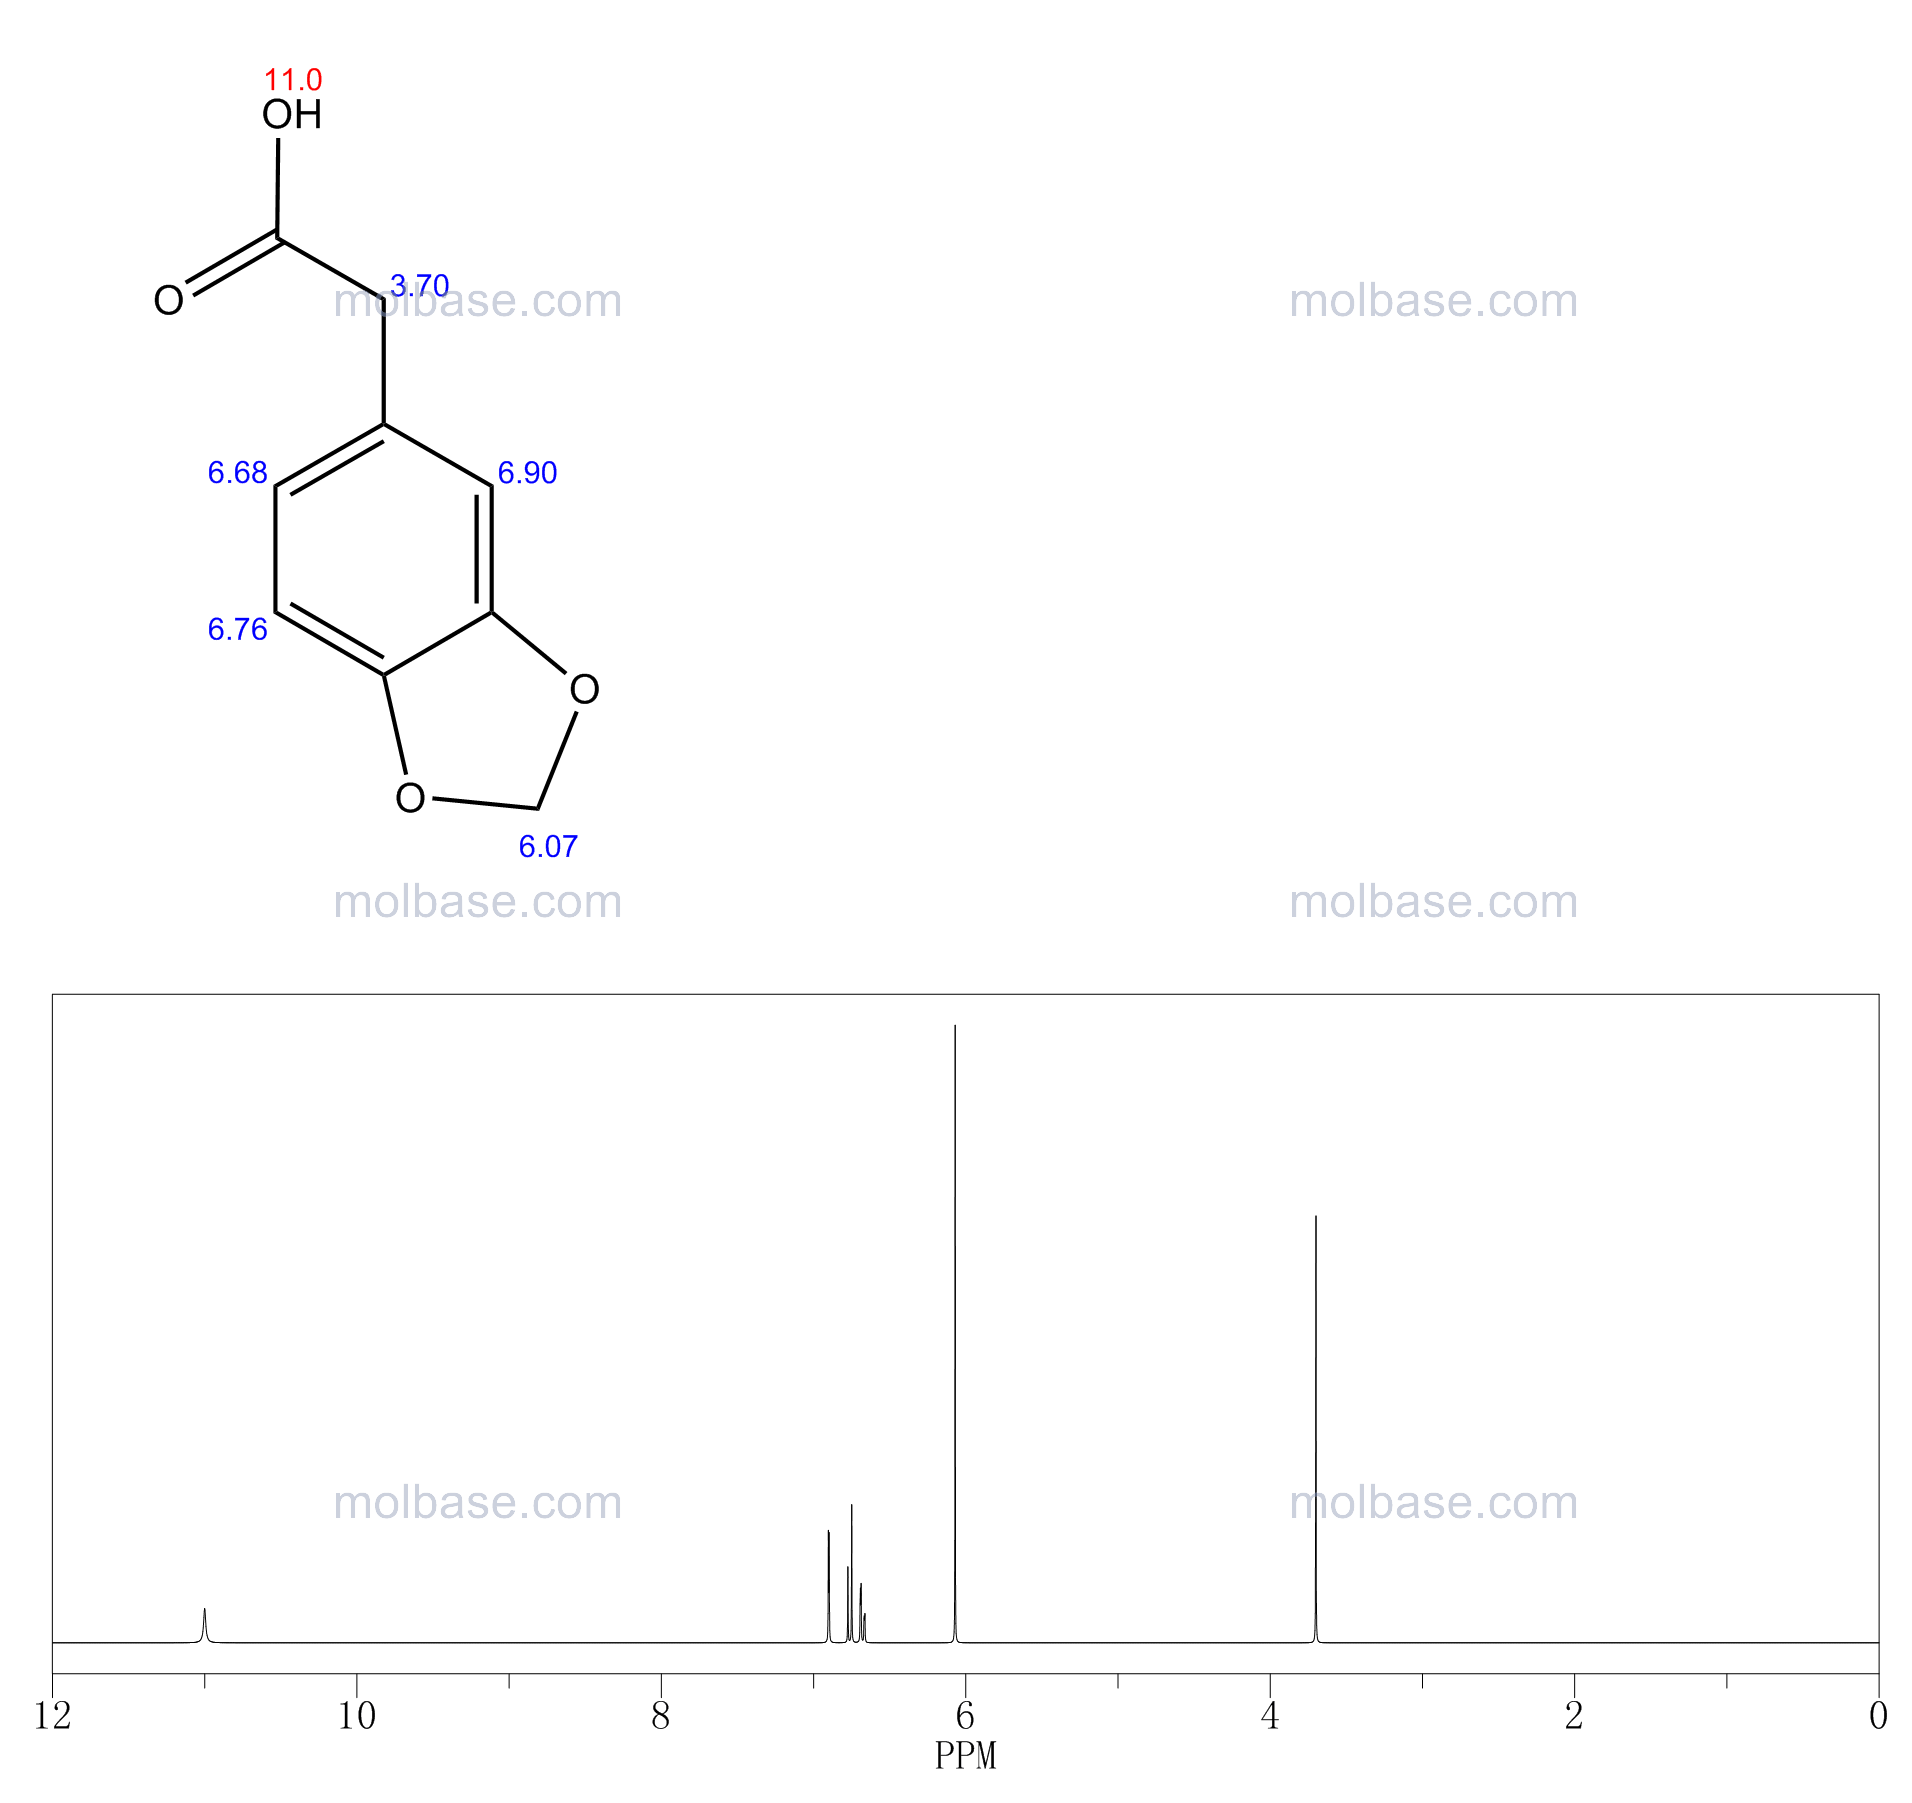 2-(1,3-benzodioxol-5-yl)acetic acid NMR spectra analysis, Chemical CAS NO. 2861-28-1 NMR spectral analysis, 2-(1,3-benzodioxol-5-yl)acetic acid C-NMR spectrum